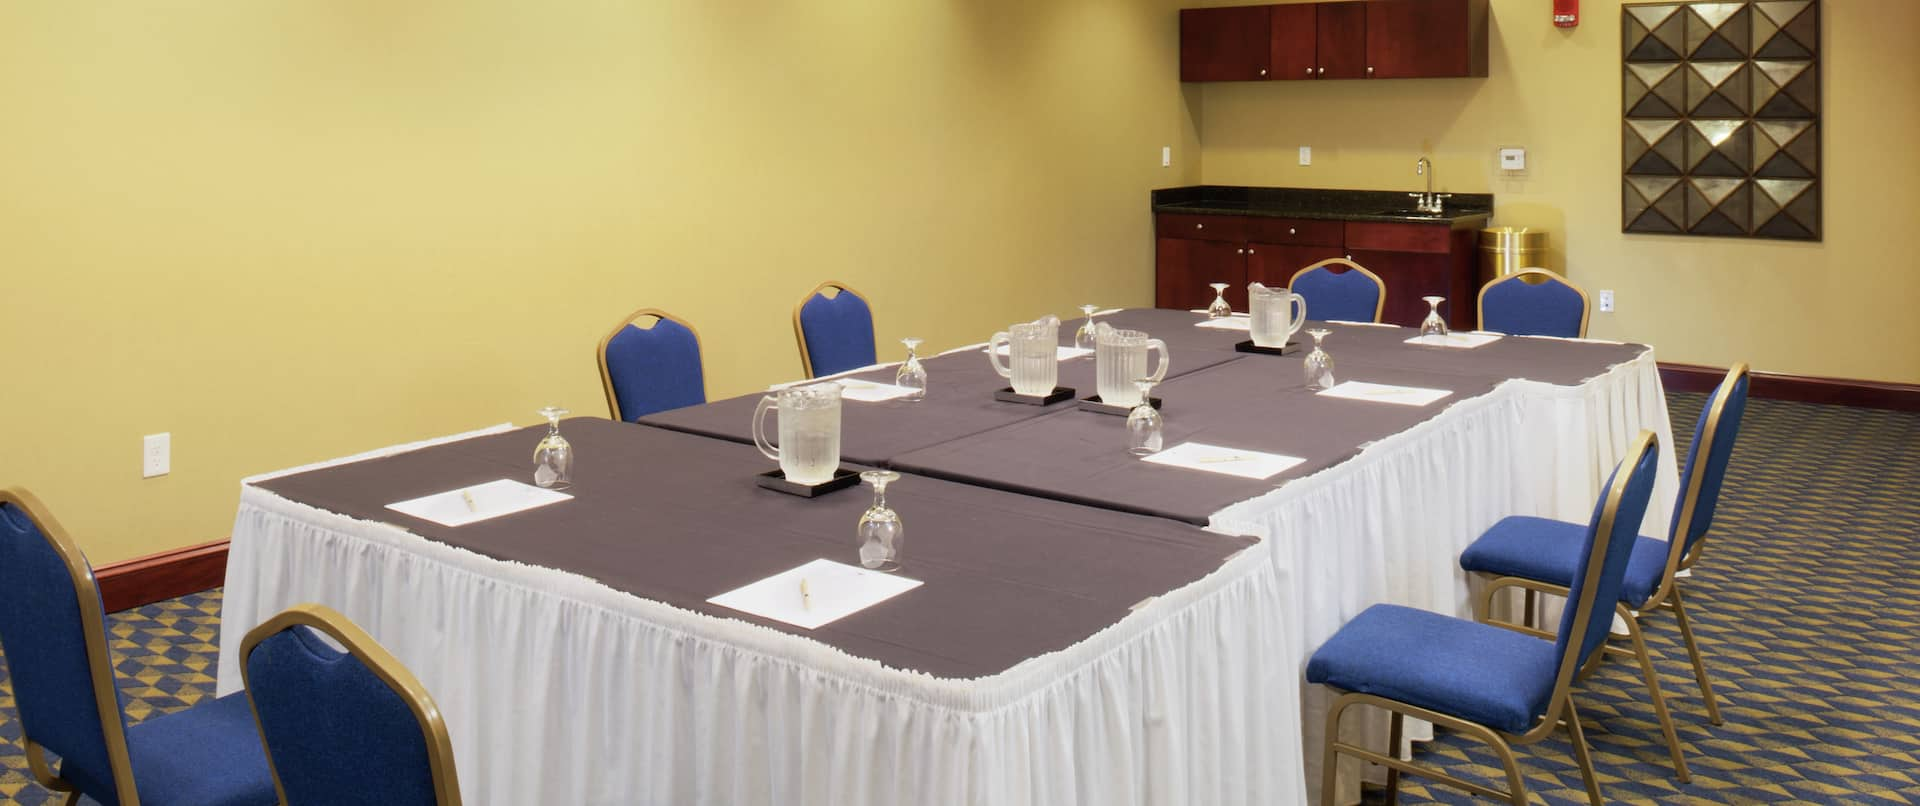 Water Pitchers, Drinking Glasses, Note Pads, and Blue Chairs at Tables in Meeting Space